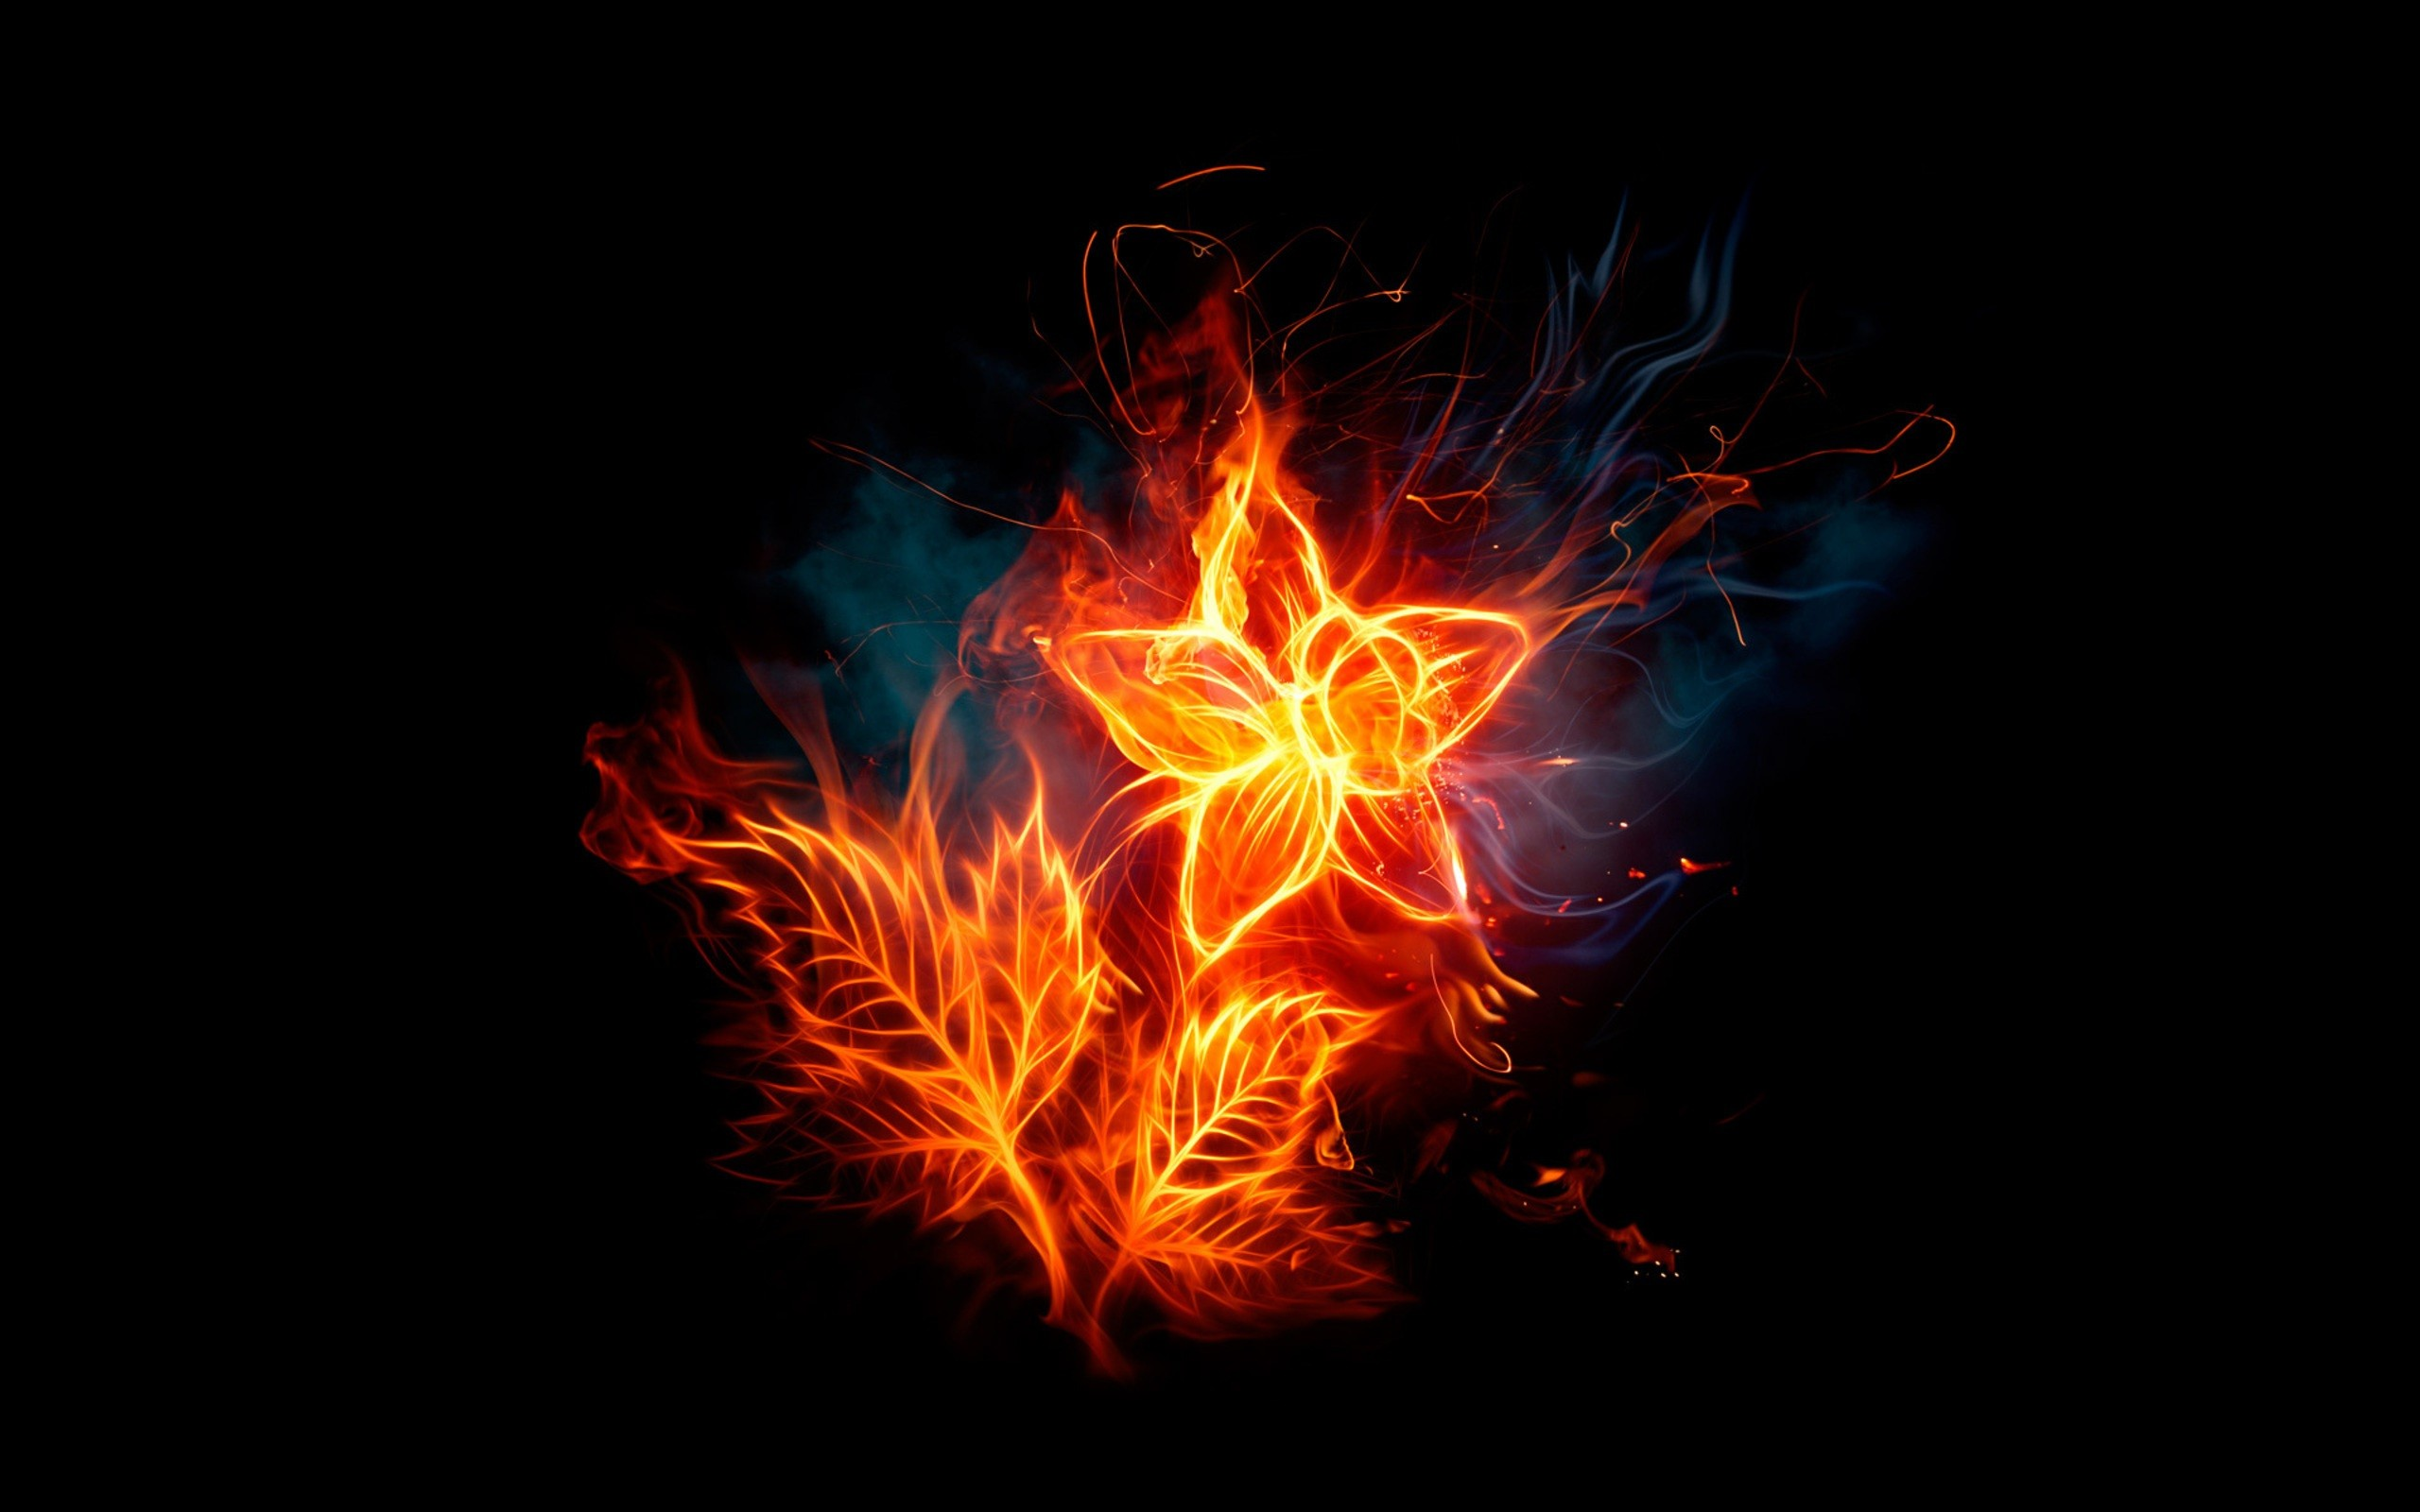 Fire Wallpaper - Wallpapers Browse